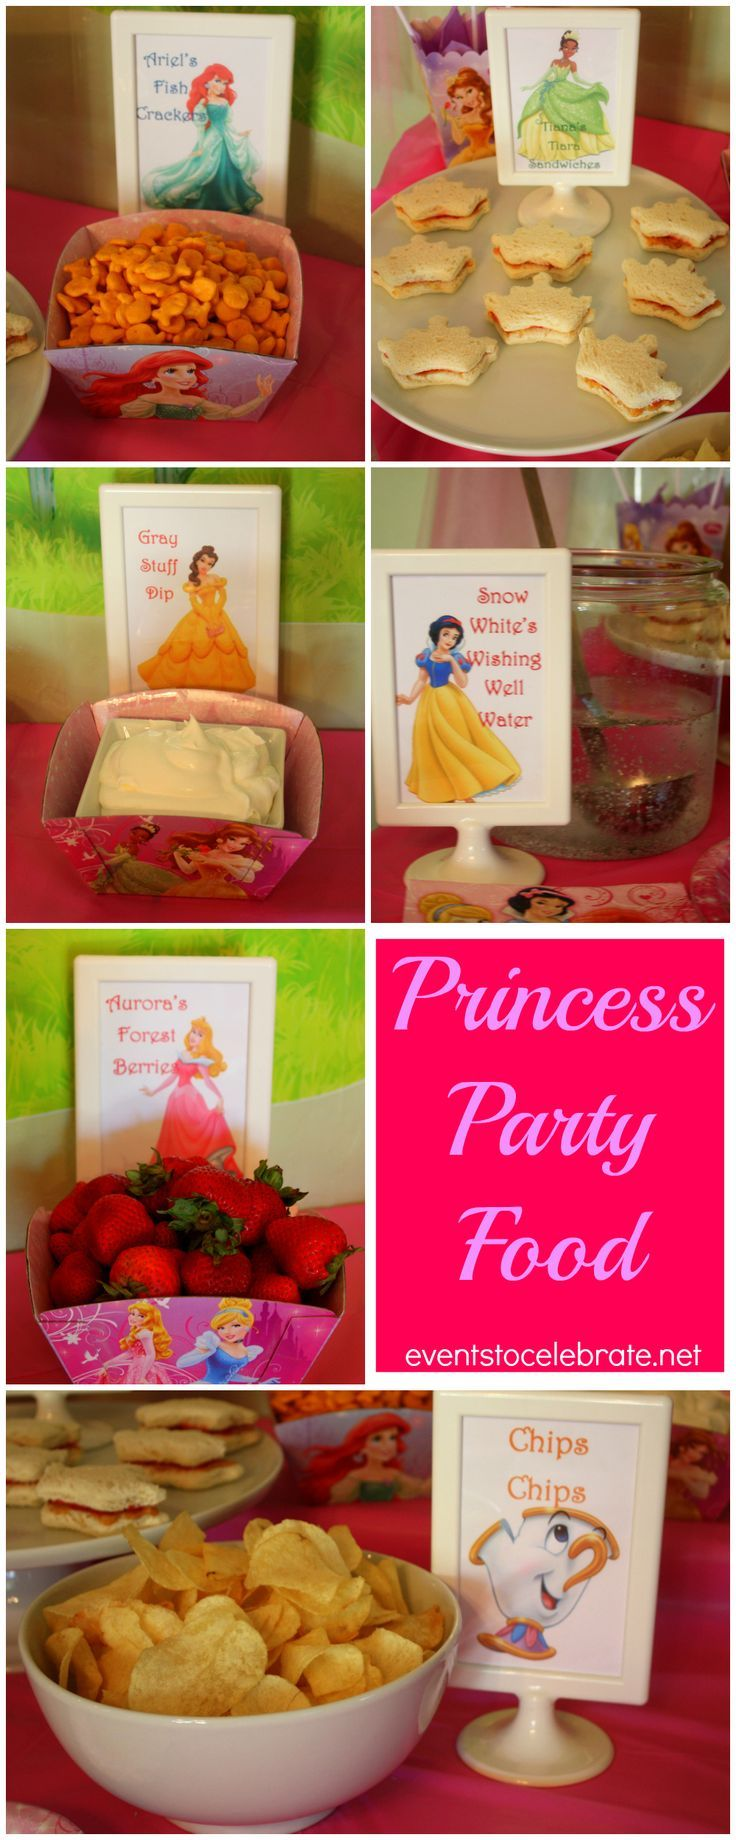 436 best images about Party - Princess Garden Party on Pinterest